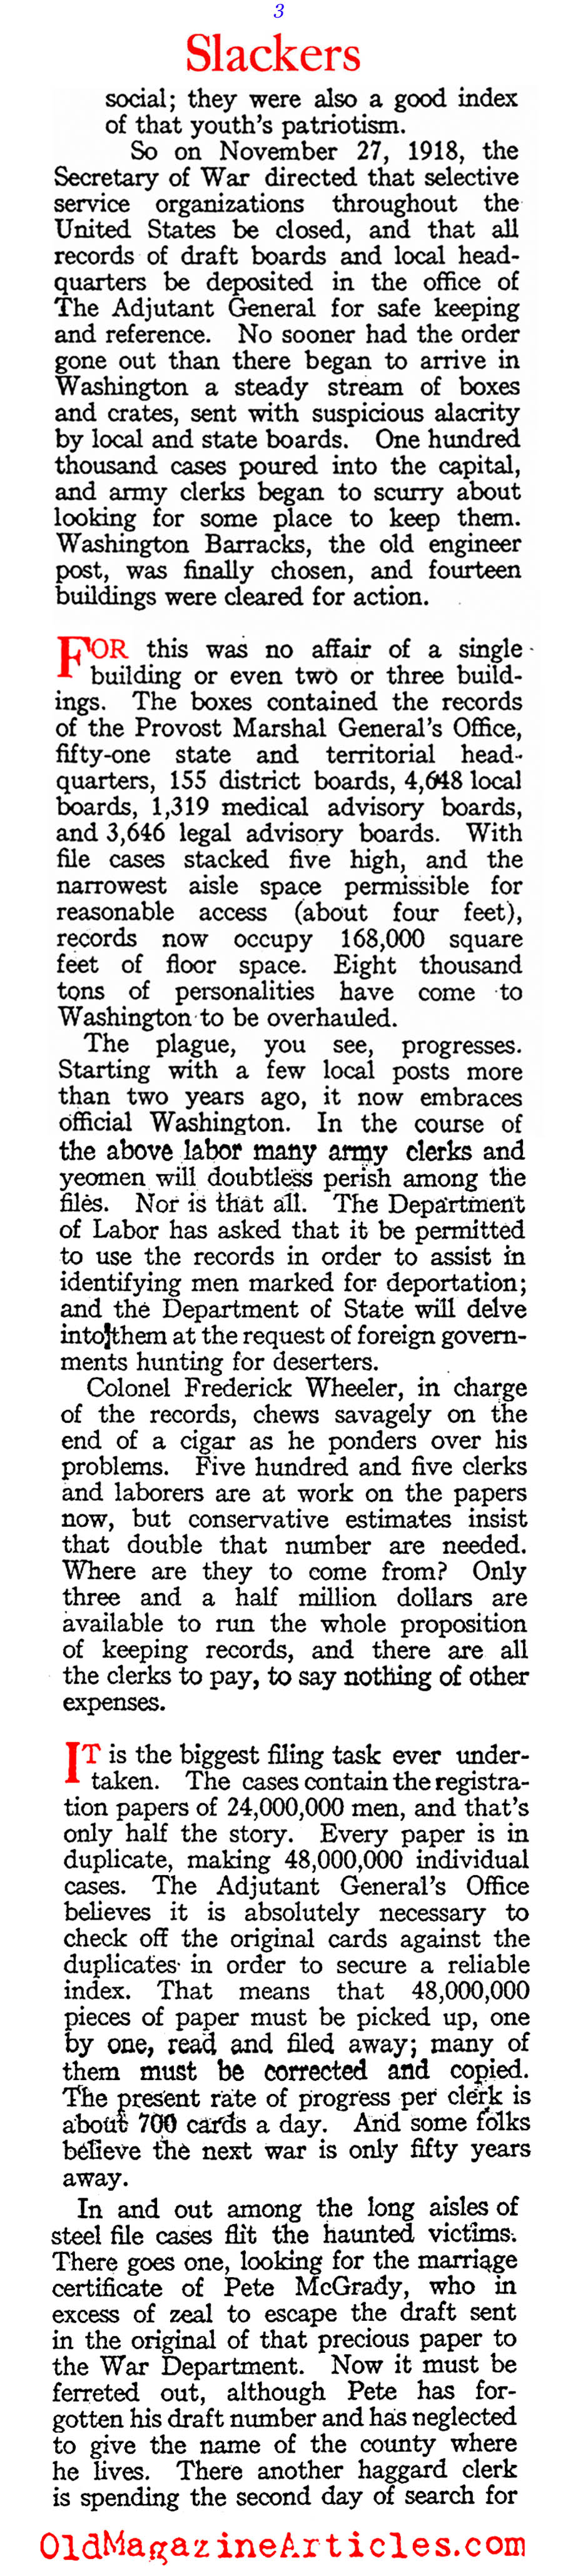 In Search of the W.W. I Draft Dodgers (American Legion Weekly, 1920)